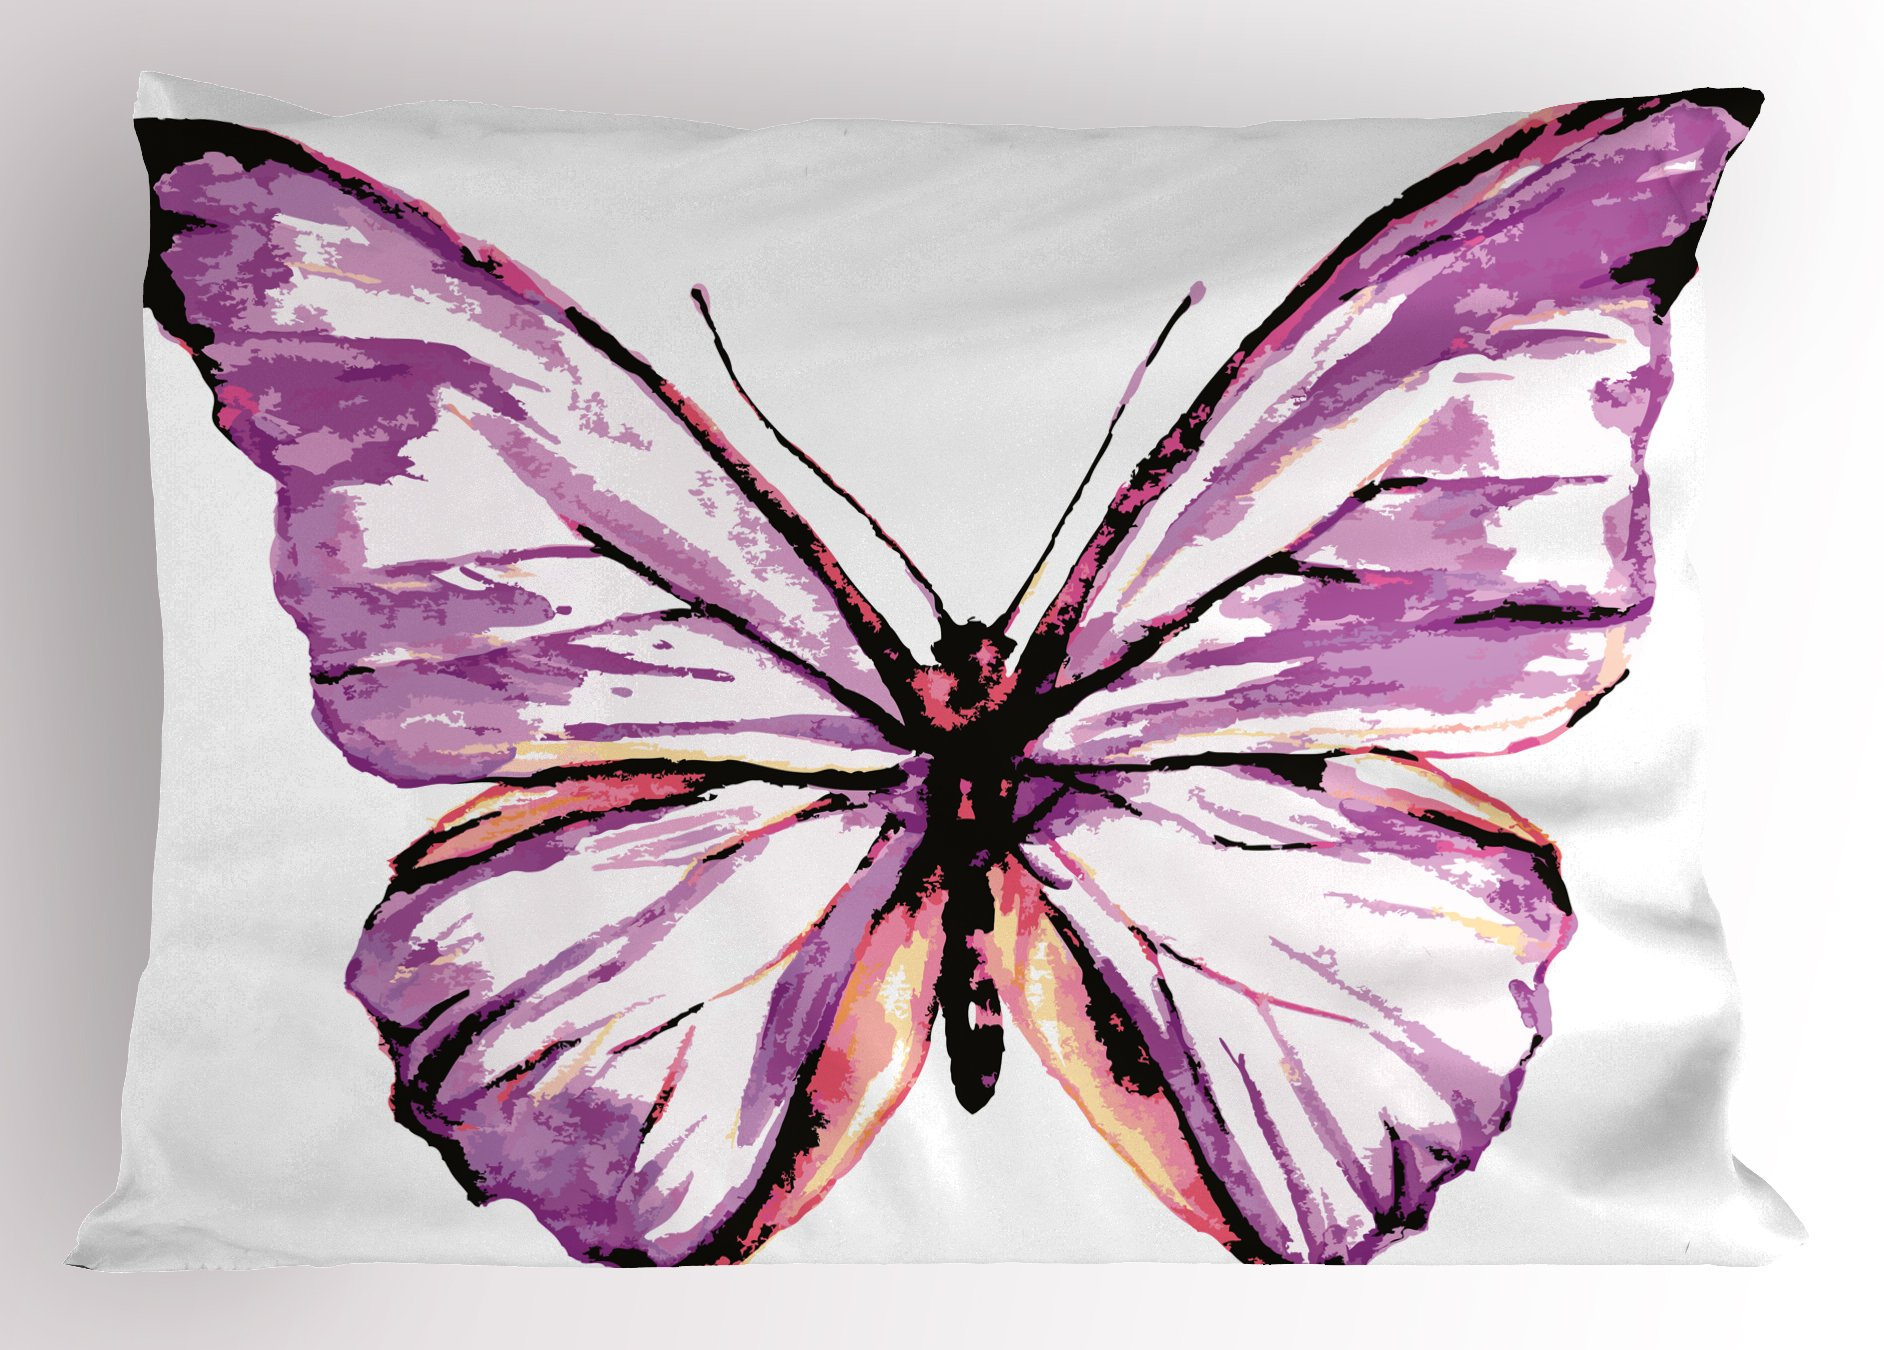 Ambesonne Animal Pillow Sham, Artistic Butterfly Design in Watercolors Wings Moth Vintage Illustration, Decorative Standard King Size Printed Pillowcase, 36 X 20 inches, Violet Salmon Black